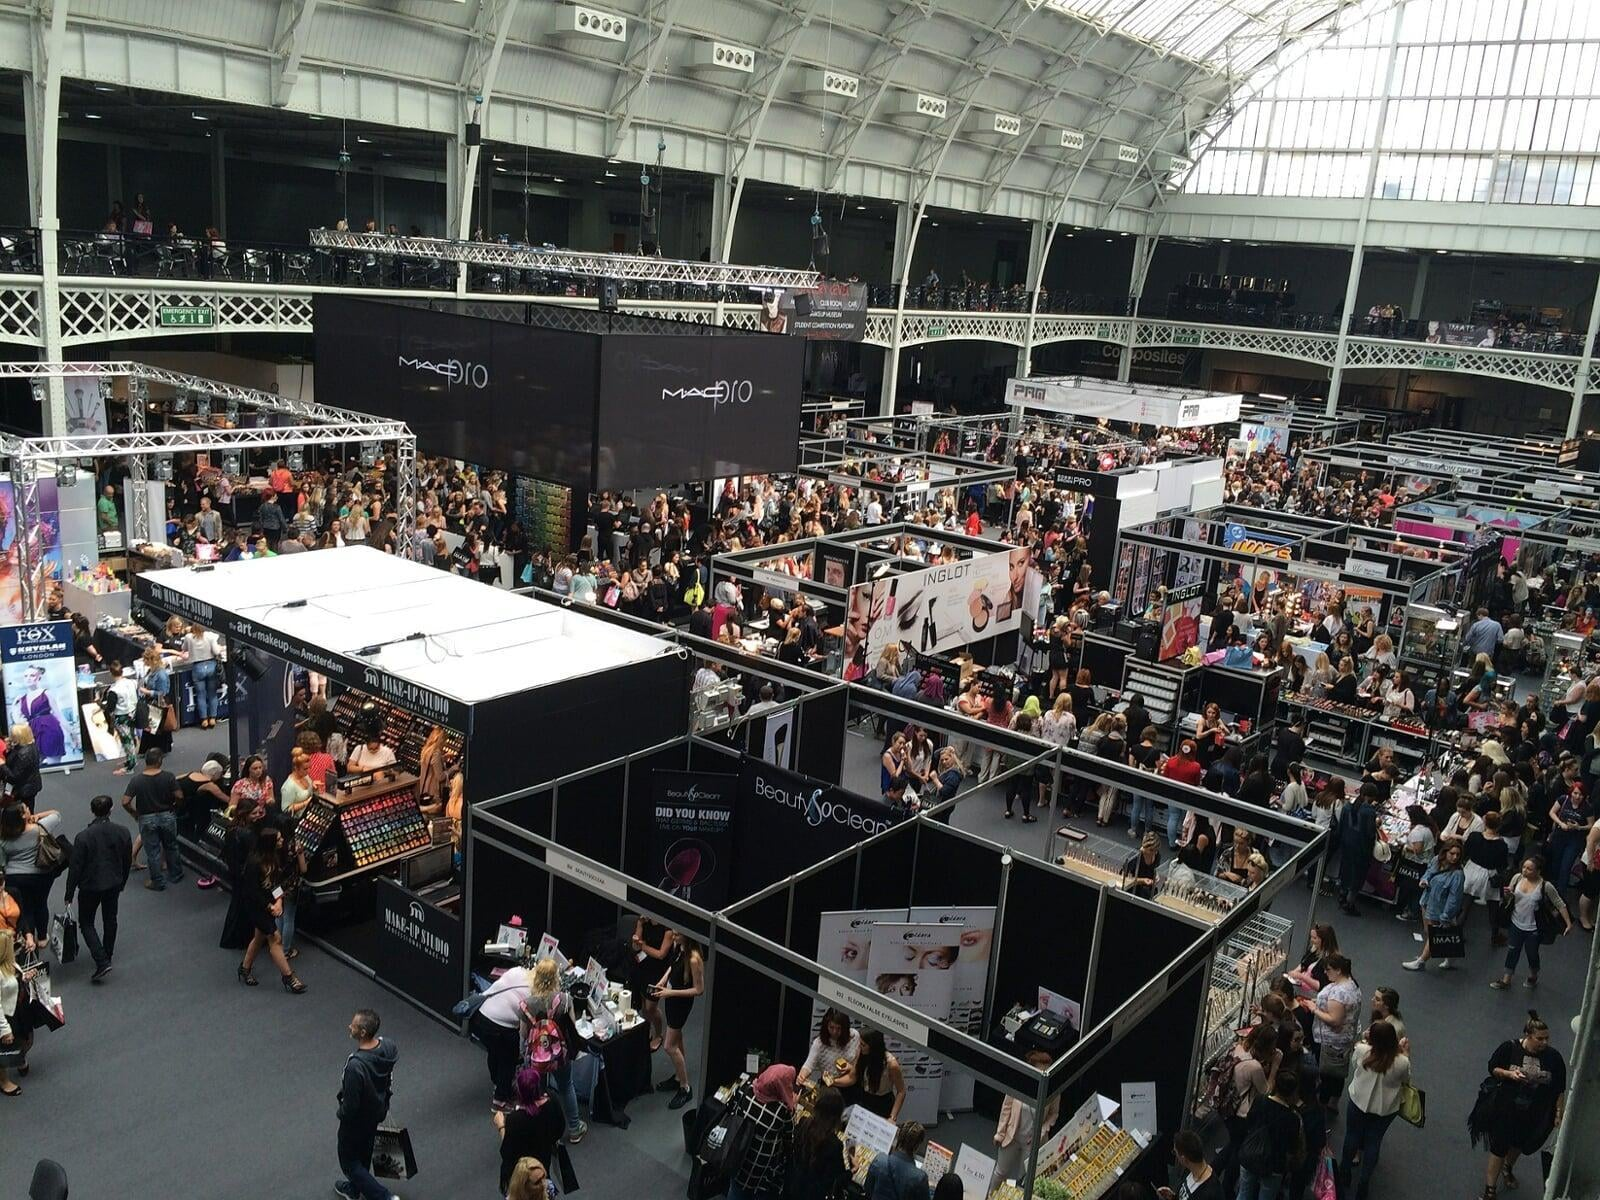 A large open and airy exhibition hall with multiple trade stands and busy attendees.